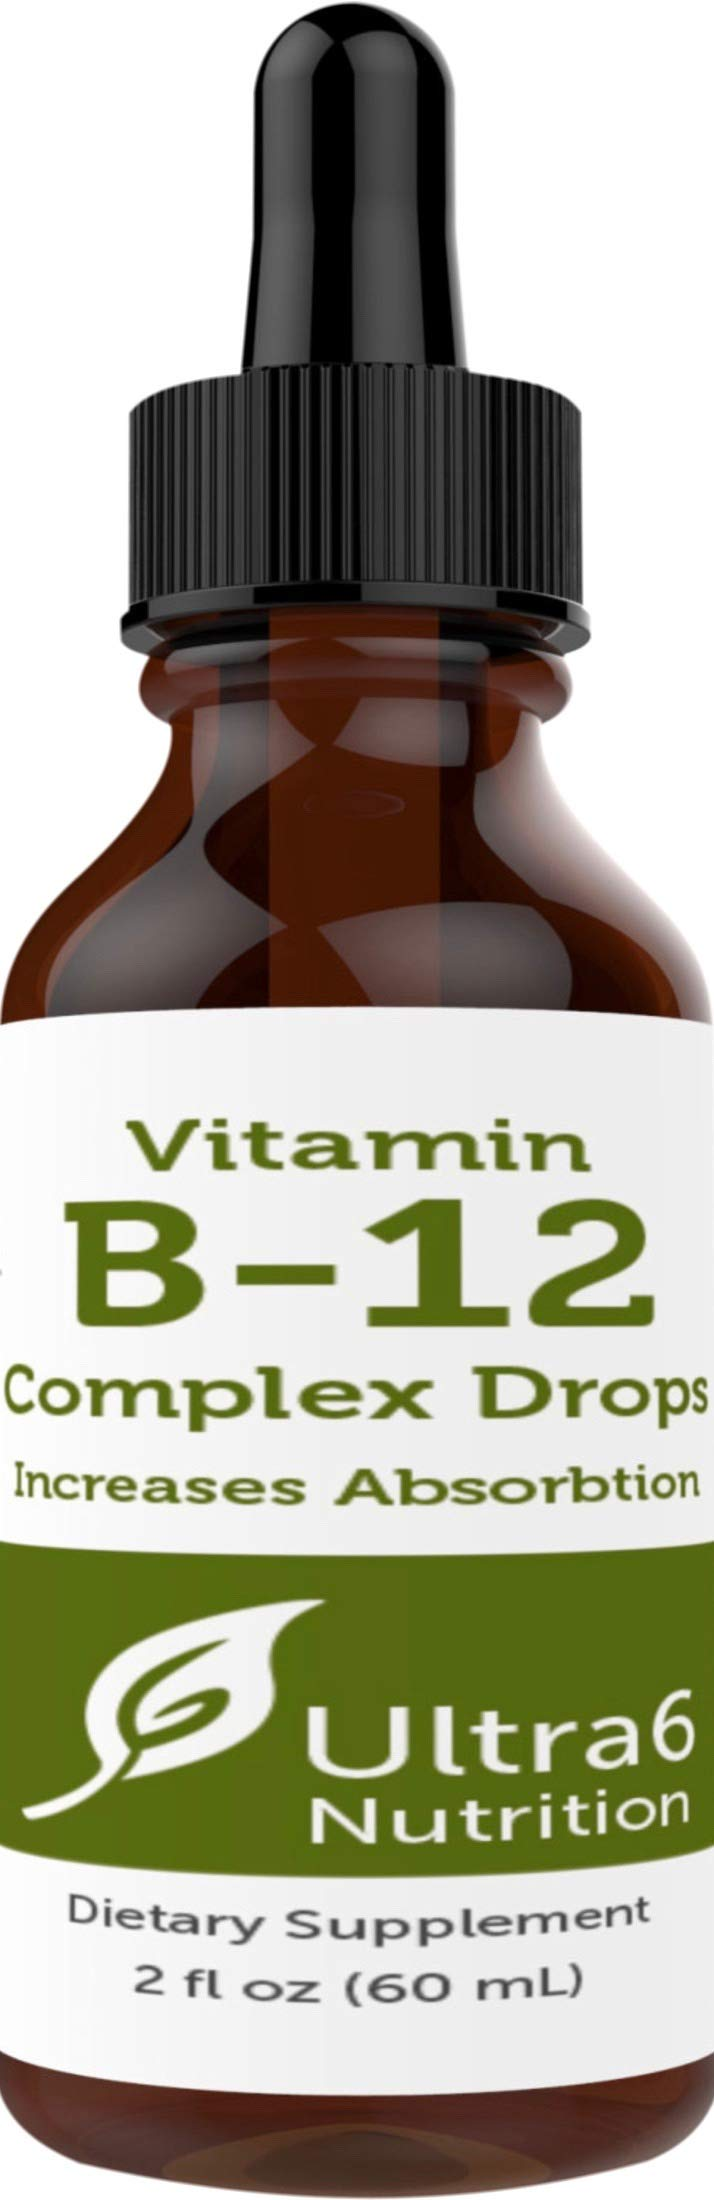 Vitamin B12 Drops in Liquid Form for Best Absorption - Methylcobalamin B12 Great for Energy, Sublingual Nutrition and Weight Loss by Ultra6 Nutrition